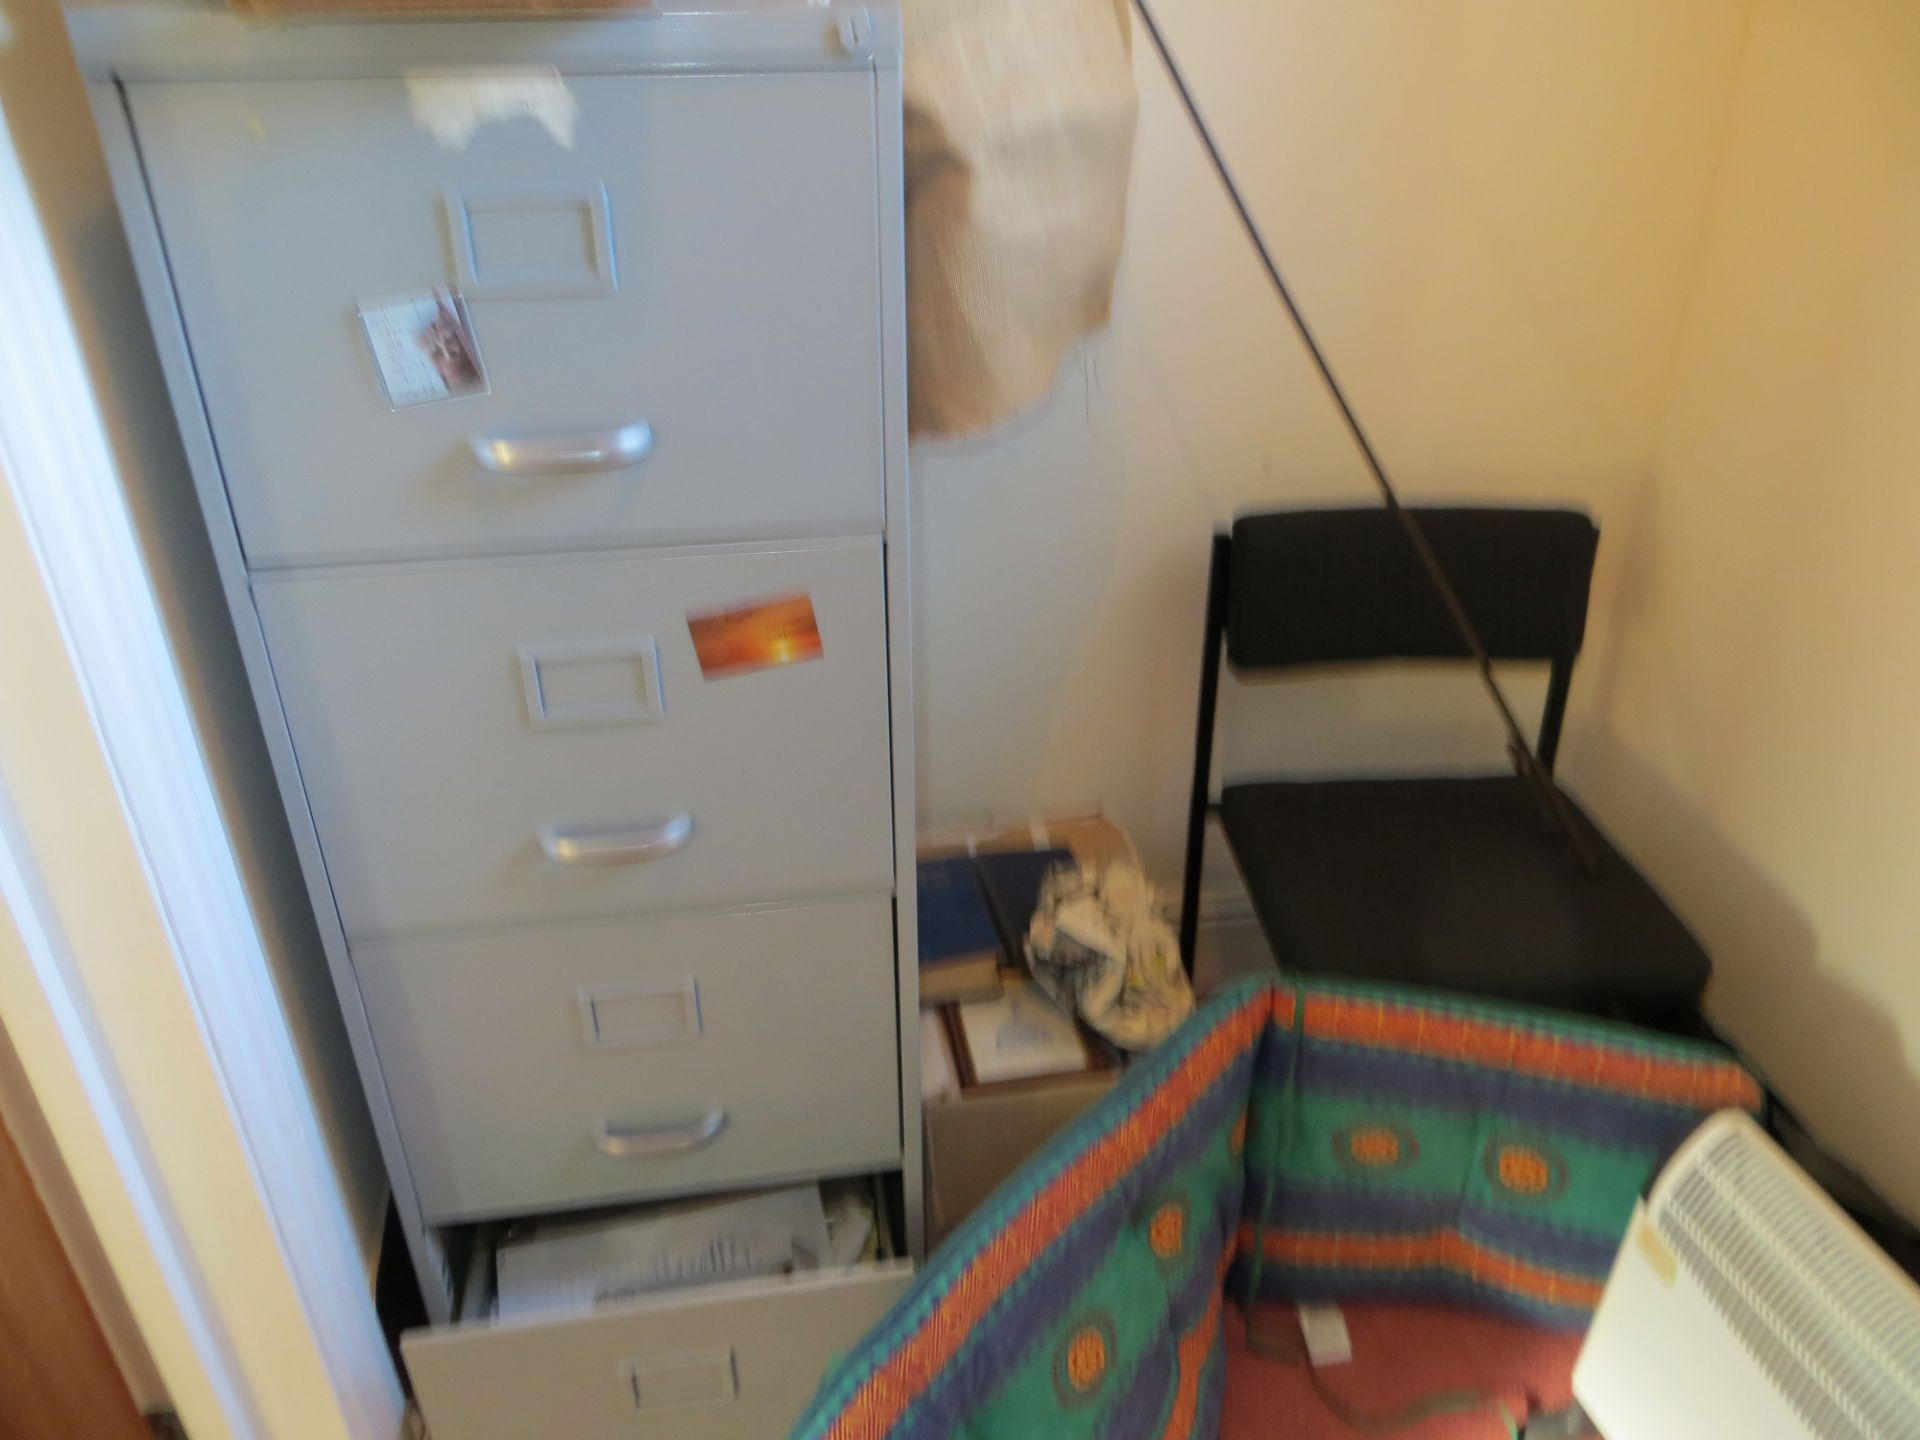 Lot 364 - Contents of office to include 4 drawer filing cabinet two 2 door cabinets, desk, side table, various